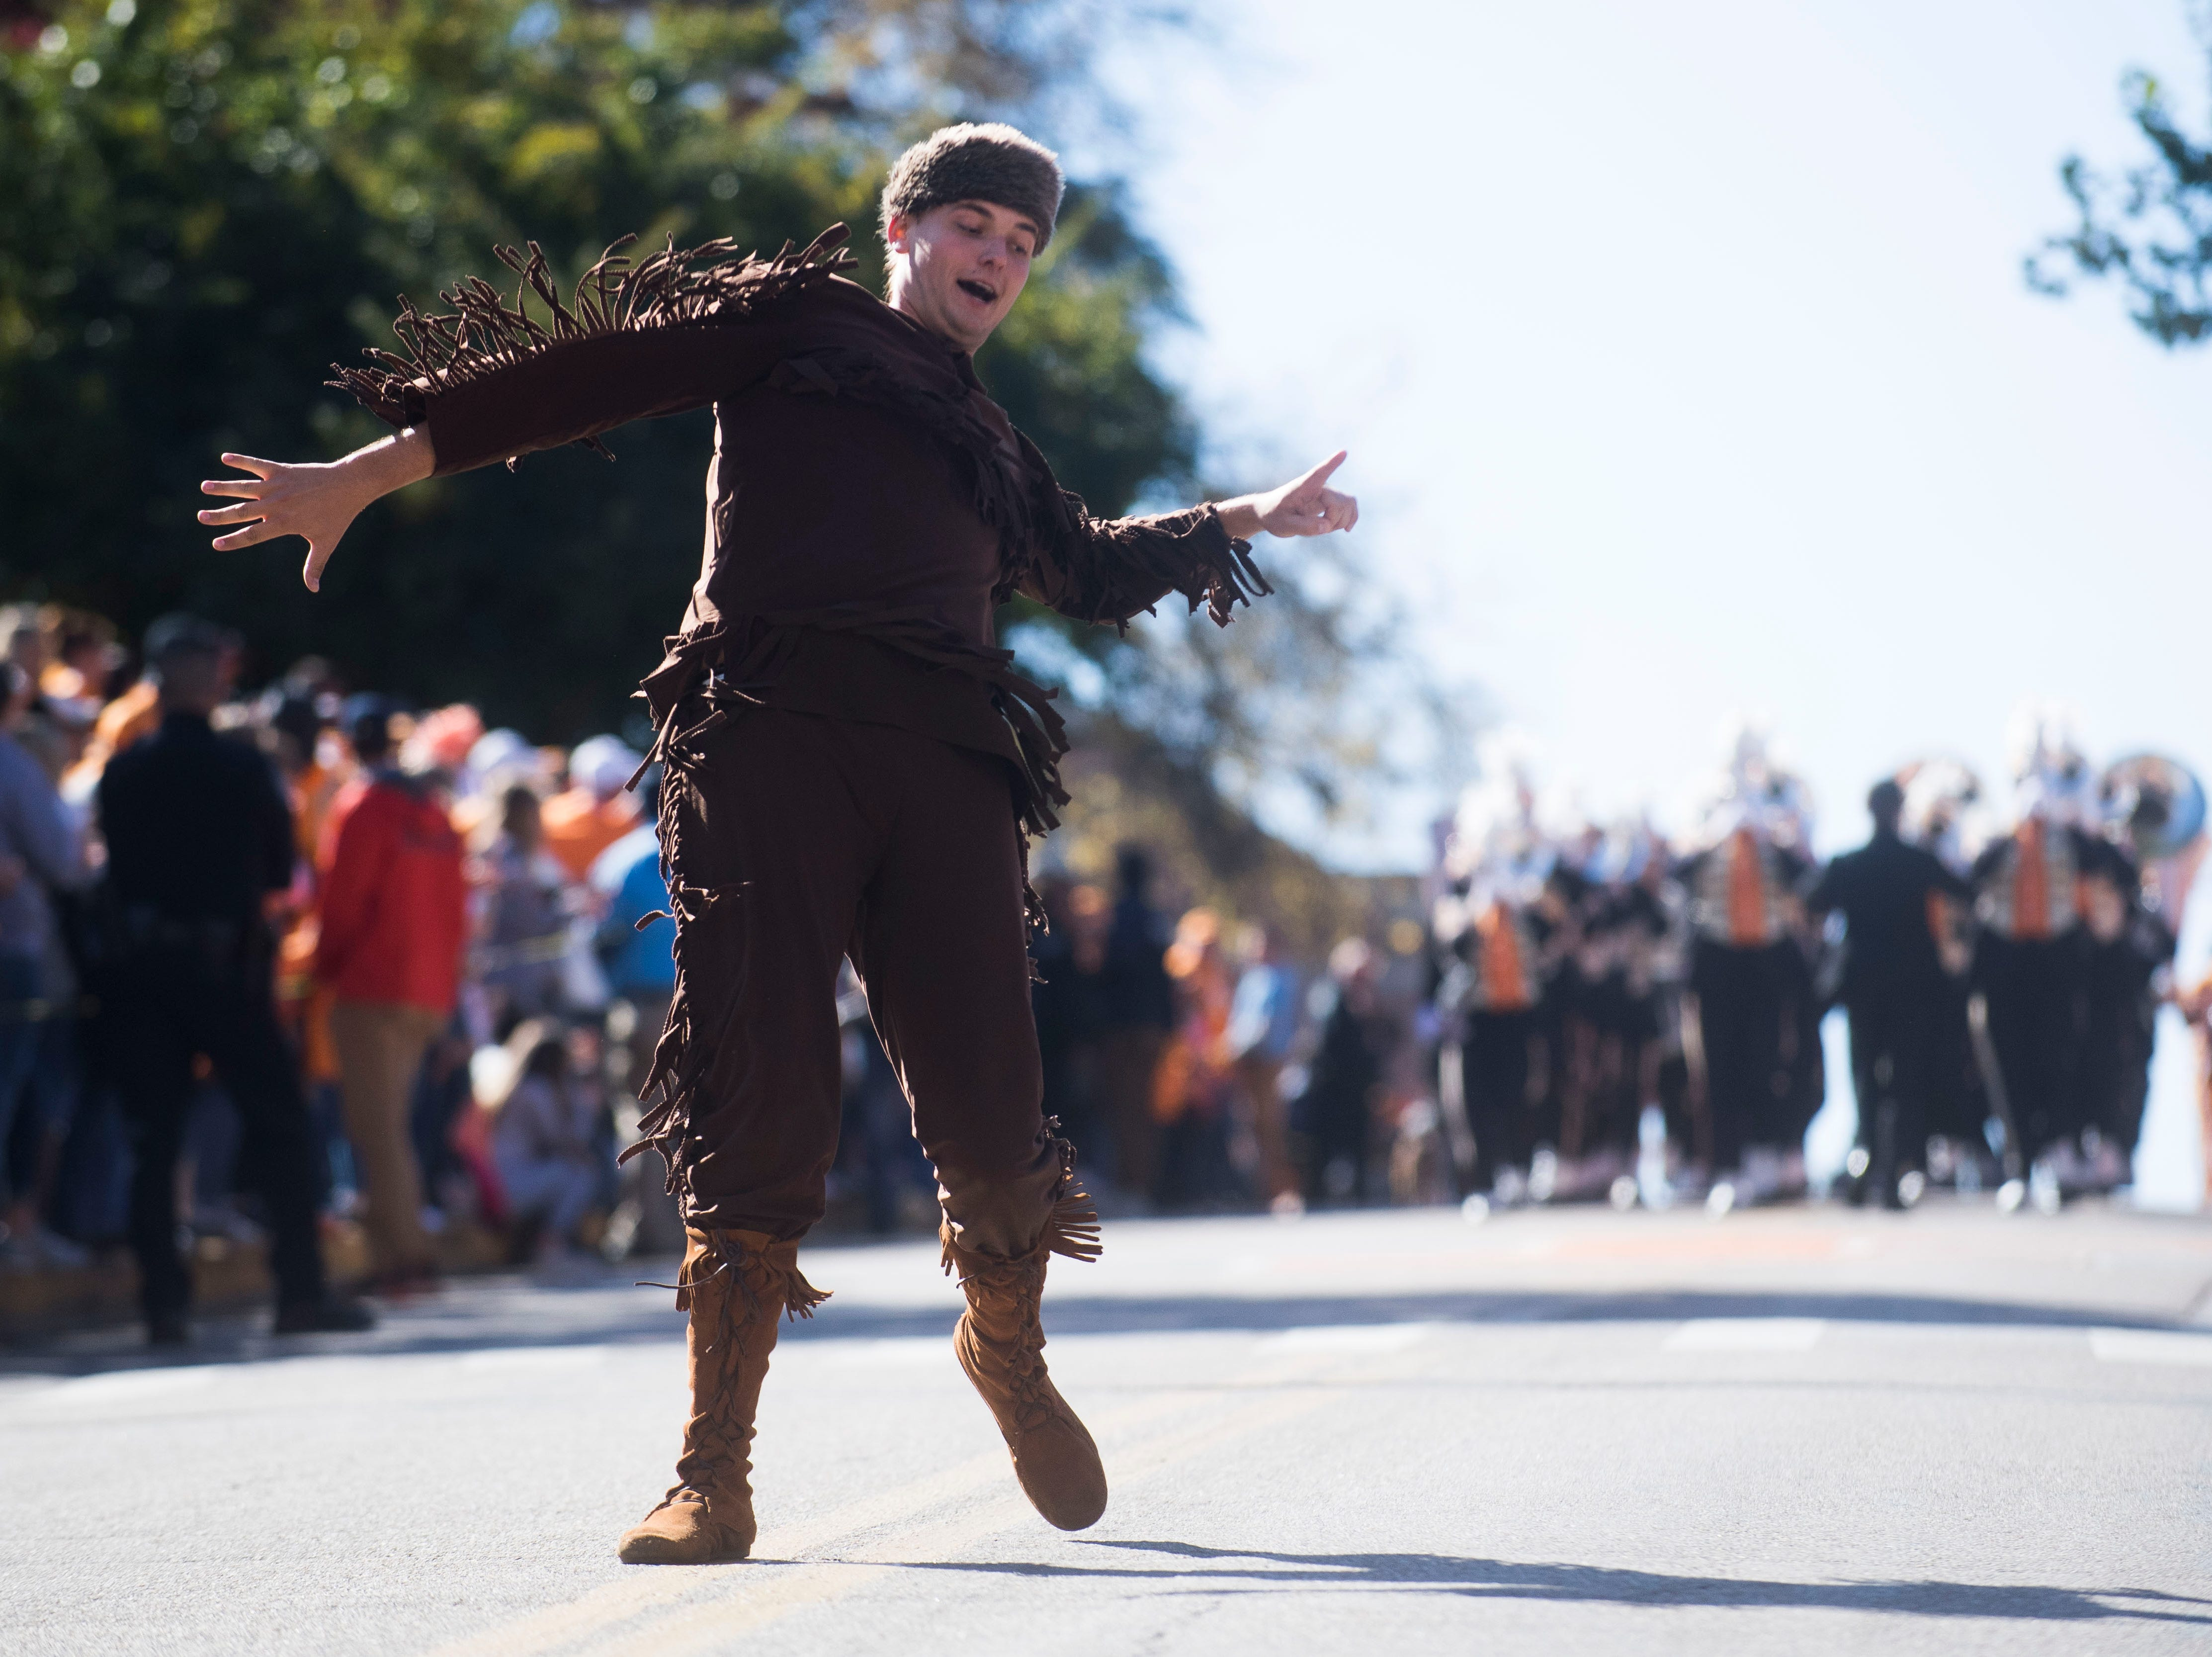 The Volunteer runs in the Vol Walk before the homecoming game between Tennessee and Charlotte outside of Neyland Stadium Saturday, Nov. 3, 2018.